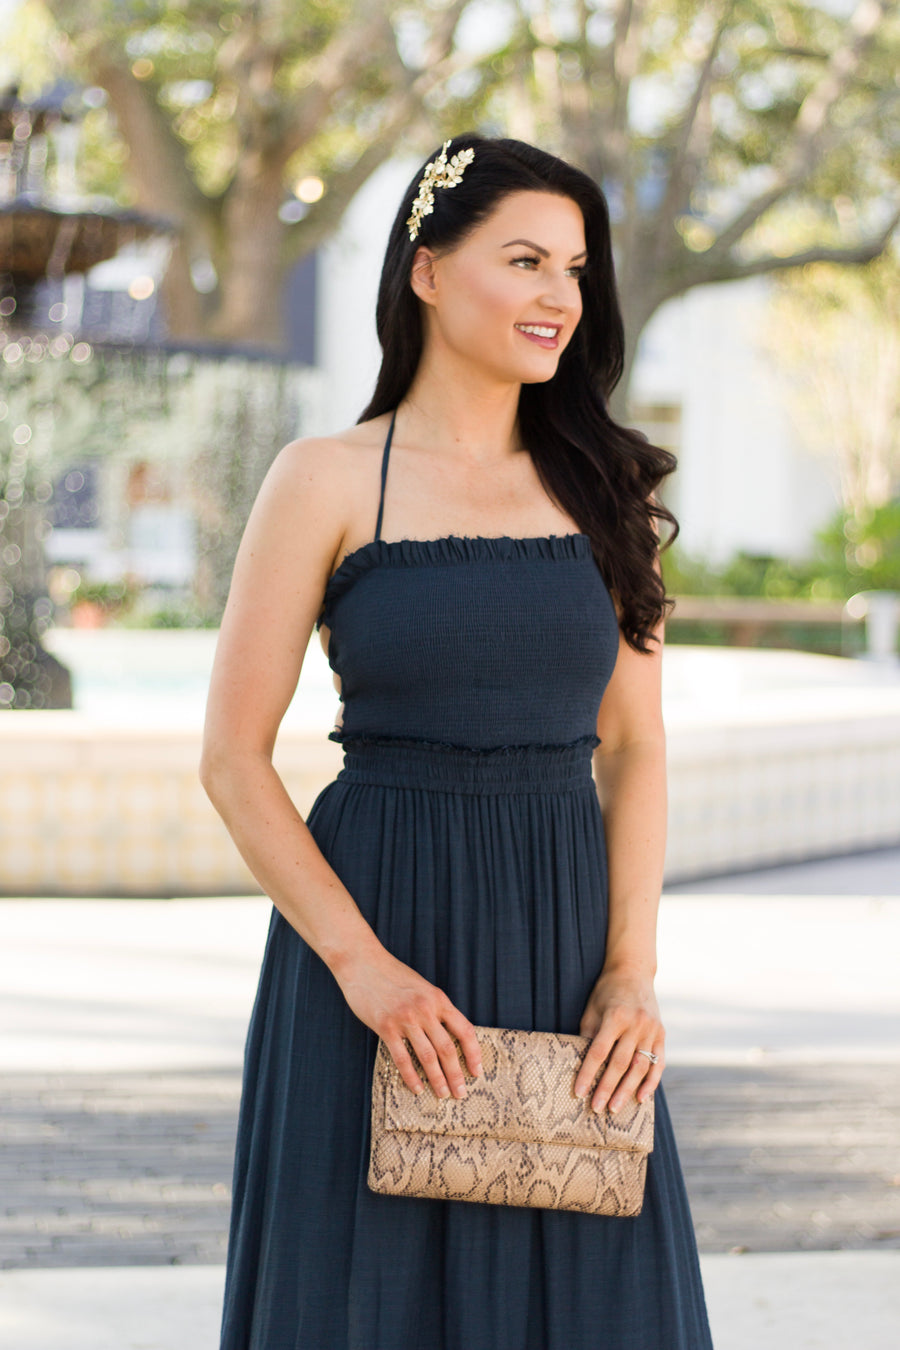 Thin halter straps that attach to a straight neckline smocked bodice and lead to an elastic waist that flows into a layered and tiered ruffle skirt.